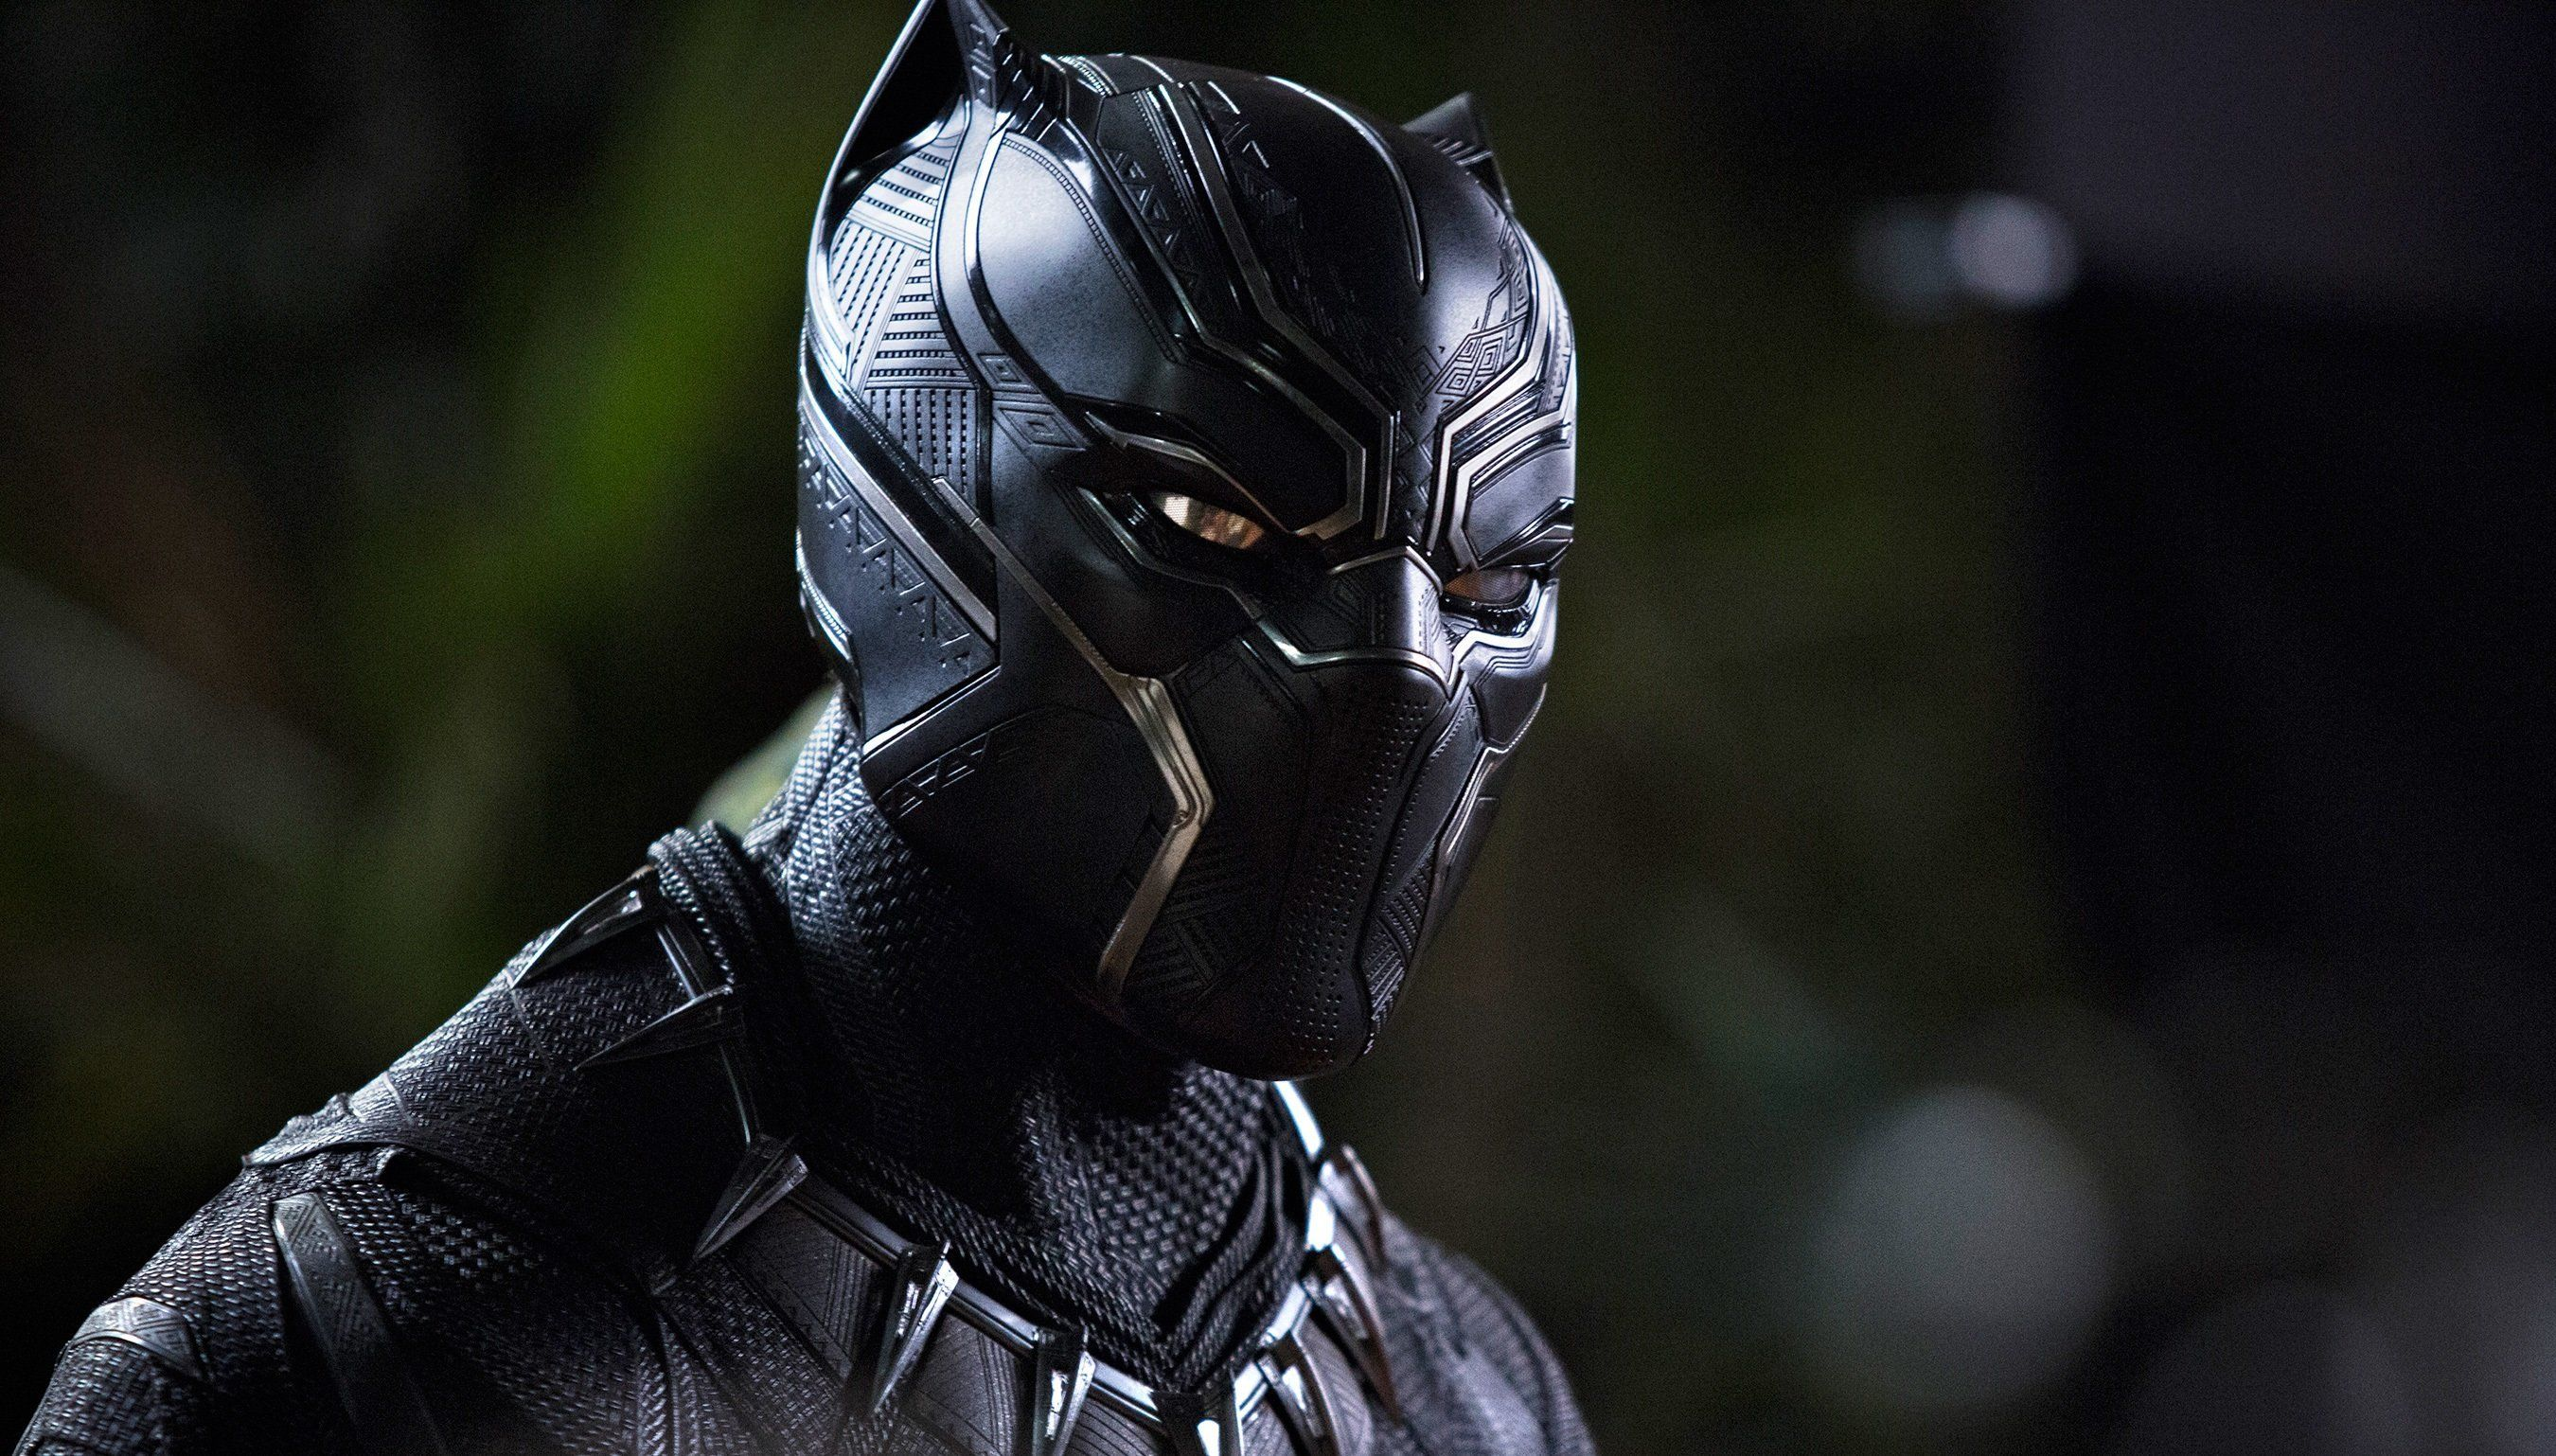 'Black Panther' Fans Are Pranking Wauconda, Illinois, With Vibranium Requests